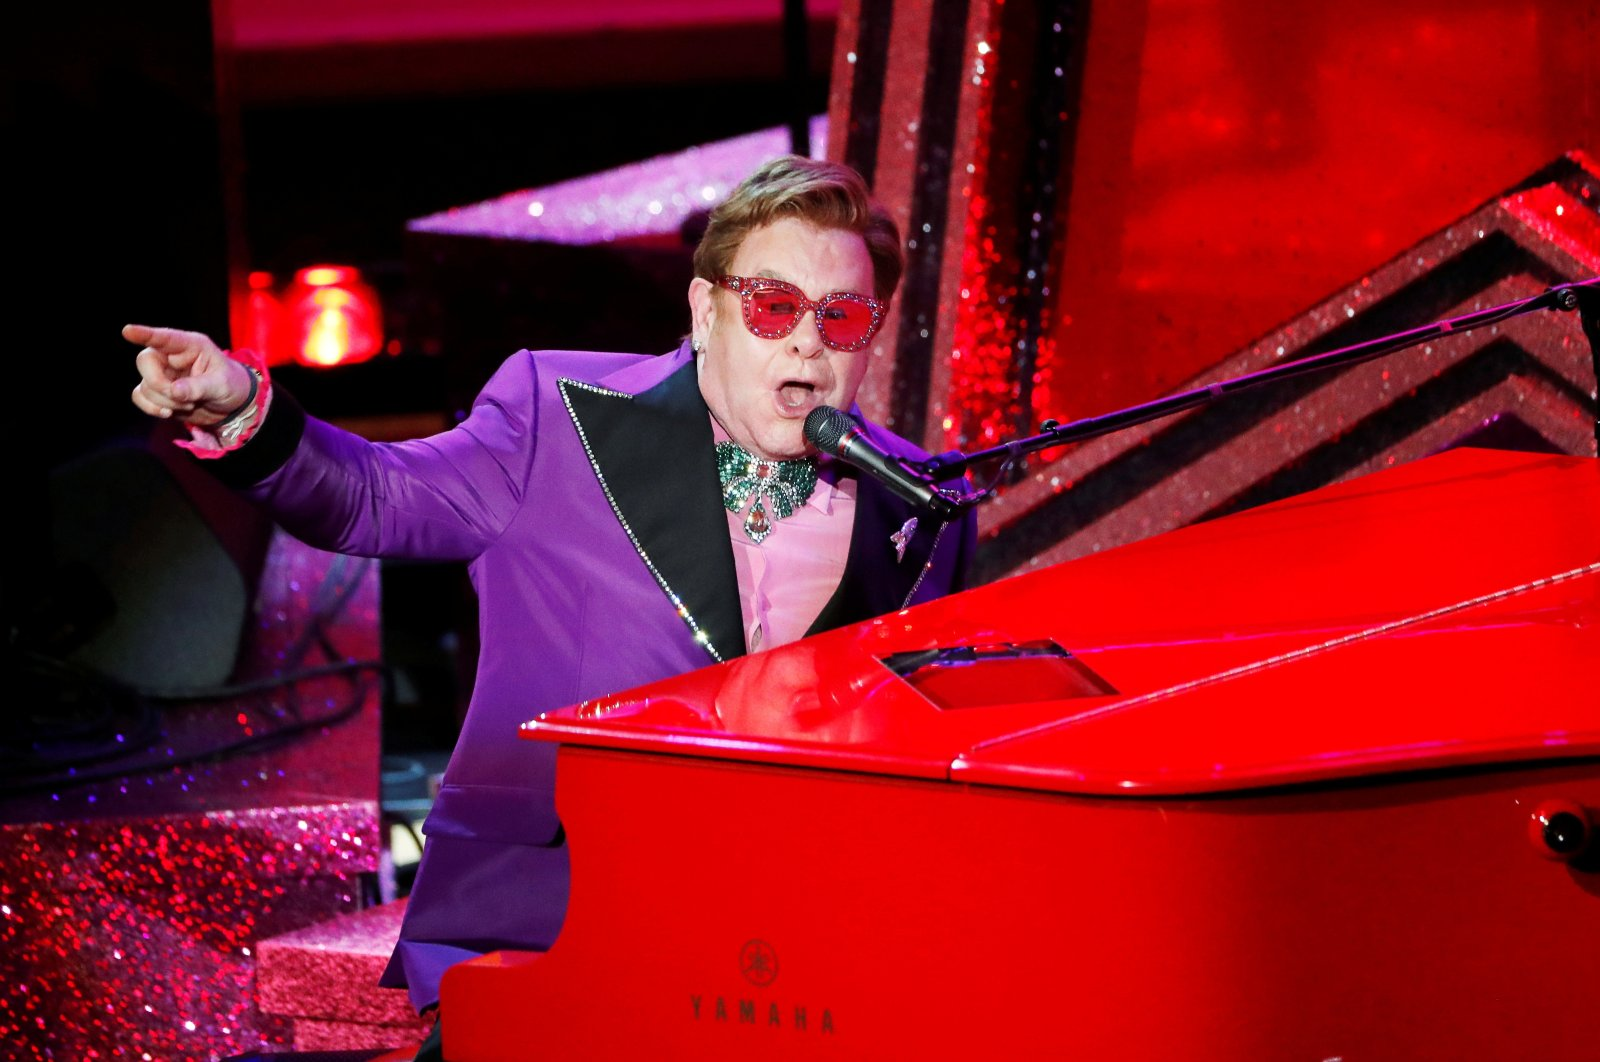 """Elton John performs """"(I'm Gonna) Love Me Again"""" from Rocketman during the Oscars show at the 92nd Academy Awards in Hollywood, Los Angeles, California, U.S., Feb. 9, 2020. (Reuters Photo)"""